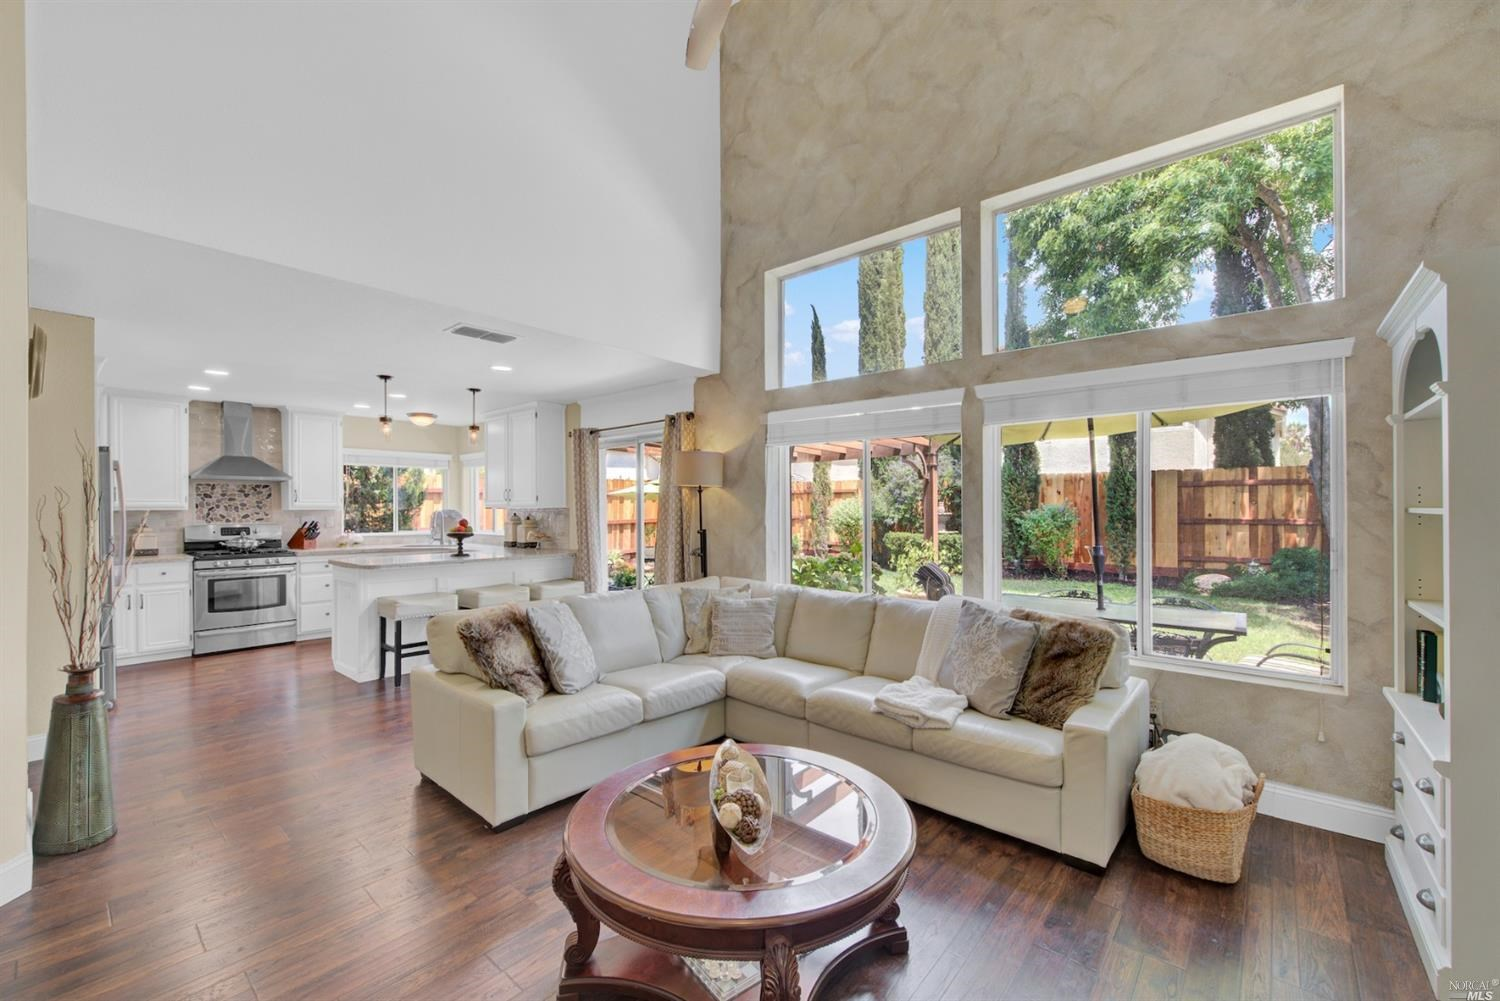 Solano County, Vacaville, CA Mediterranean Homes for Sale